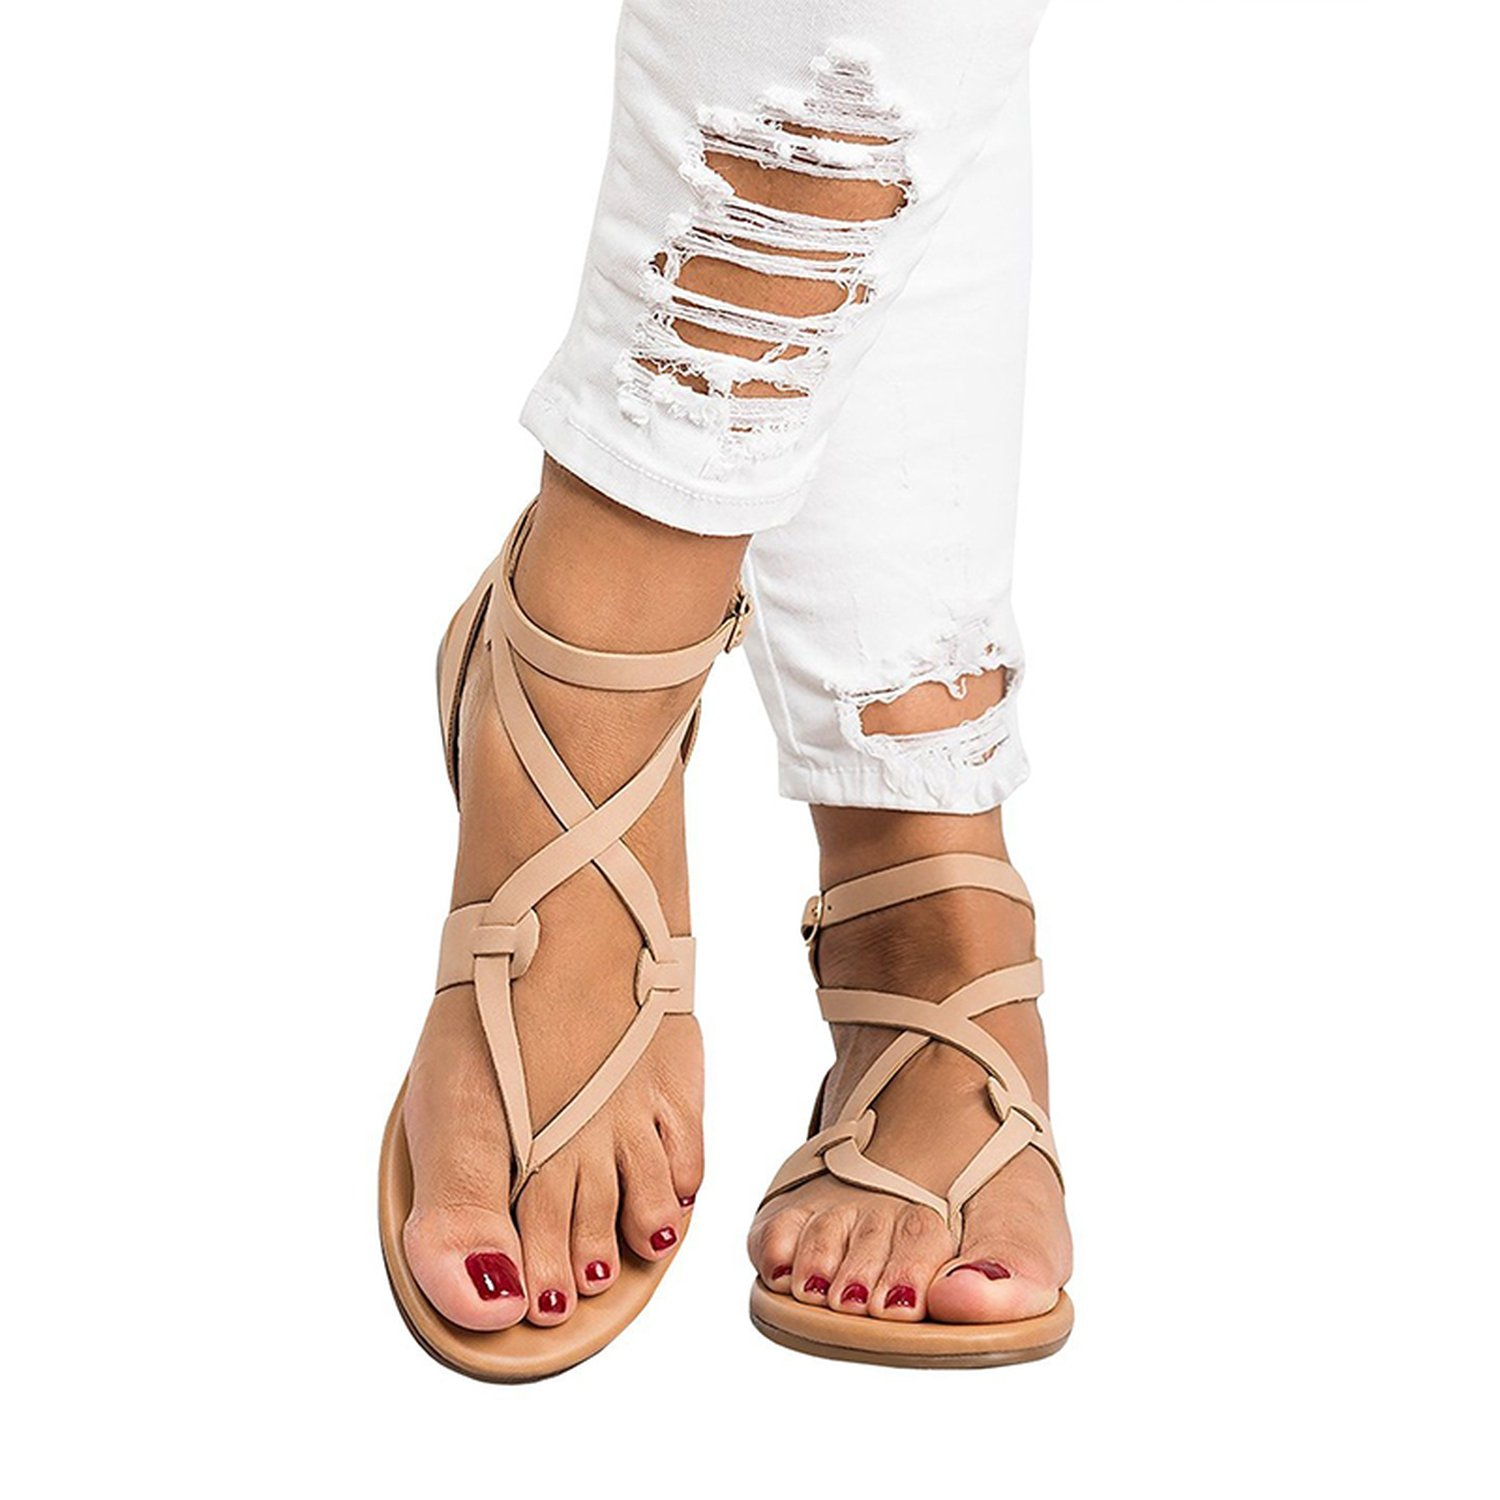 Romantic moments New Arrive Women Gladiator Sandals Summer Women Shoes Plus Size 35-43 Flats Sandals B07DLSY3CT 5 B(M) US|Pink